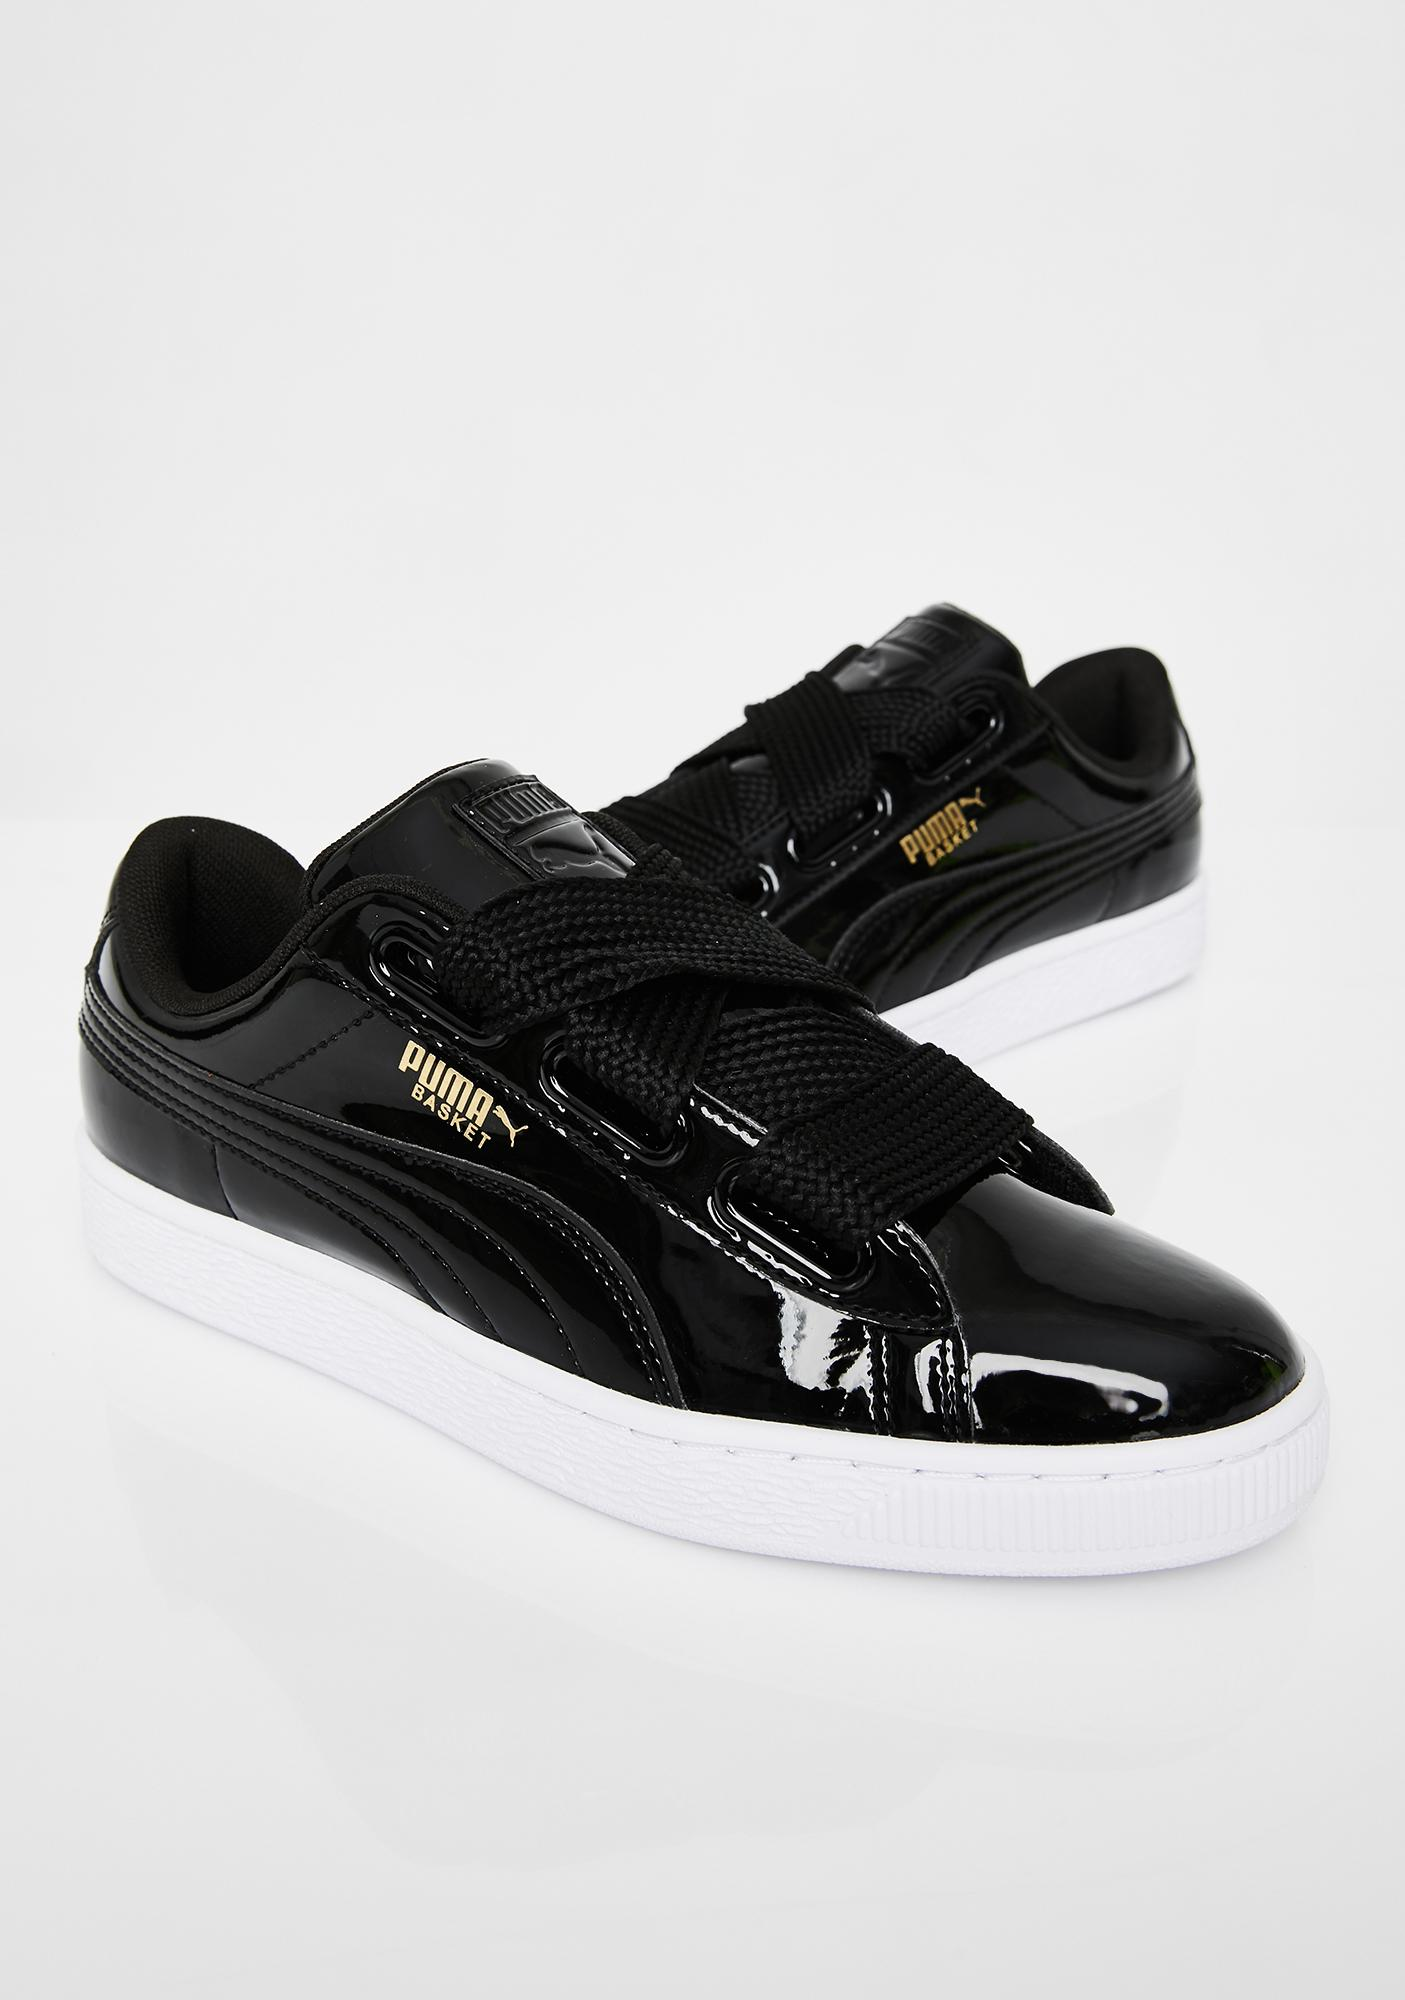 PUMA Midnight Basket Heart Patent Sneakers